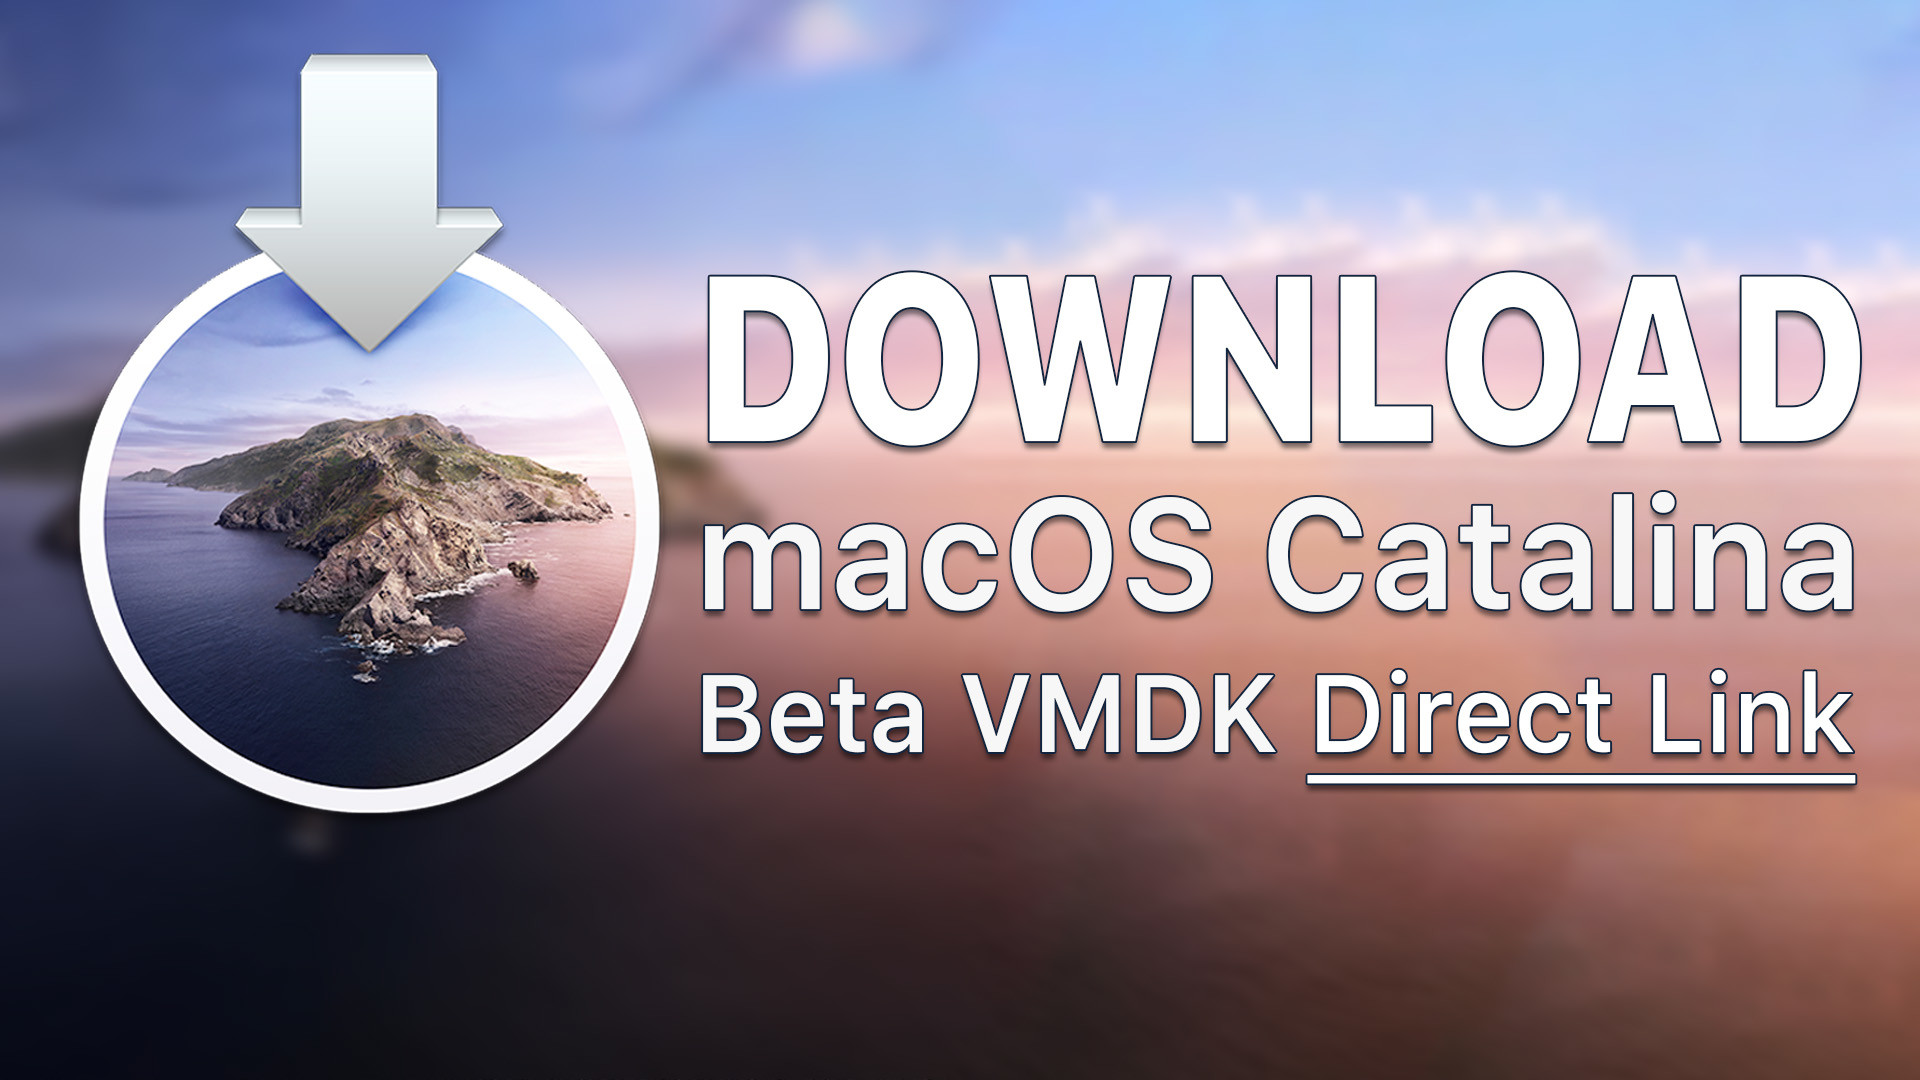 Download macOS Catalina Image for VMware & VirtualBox